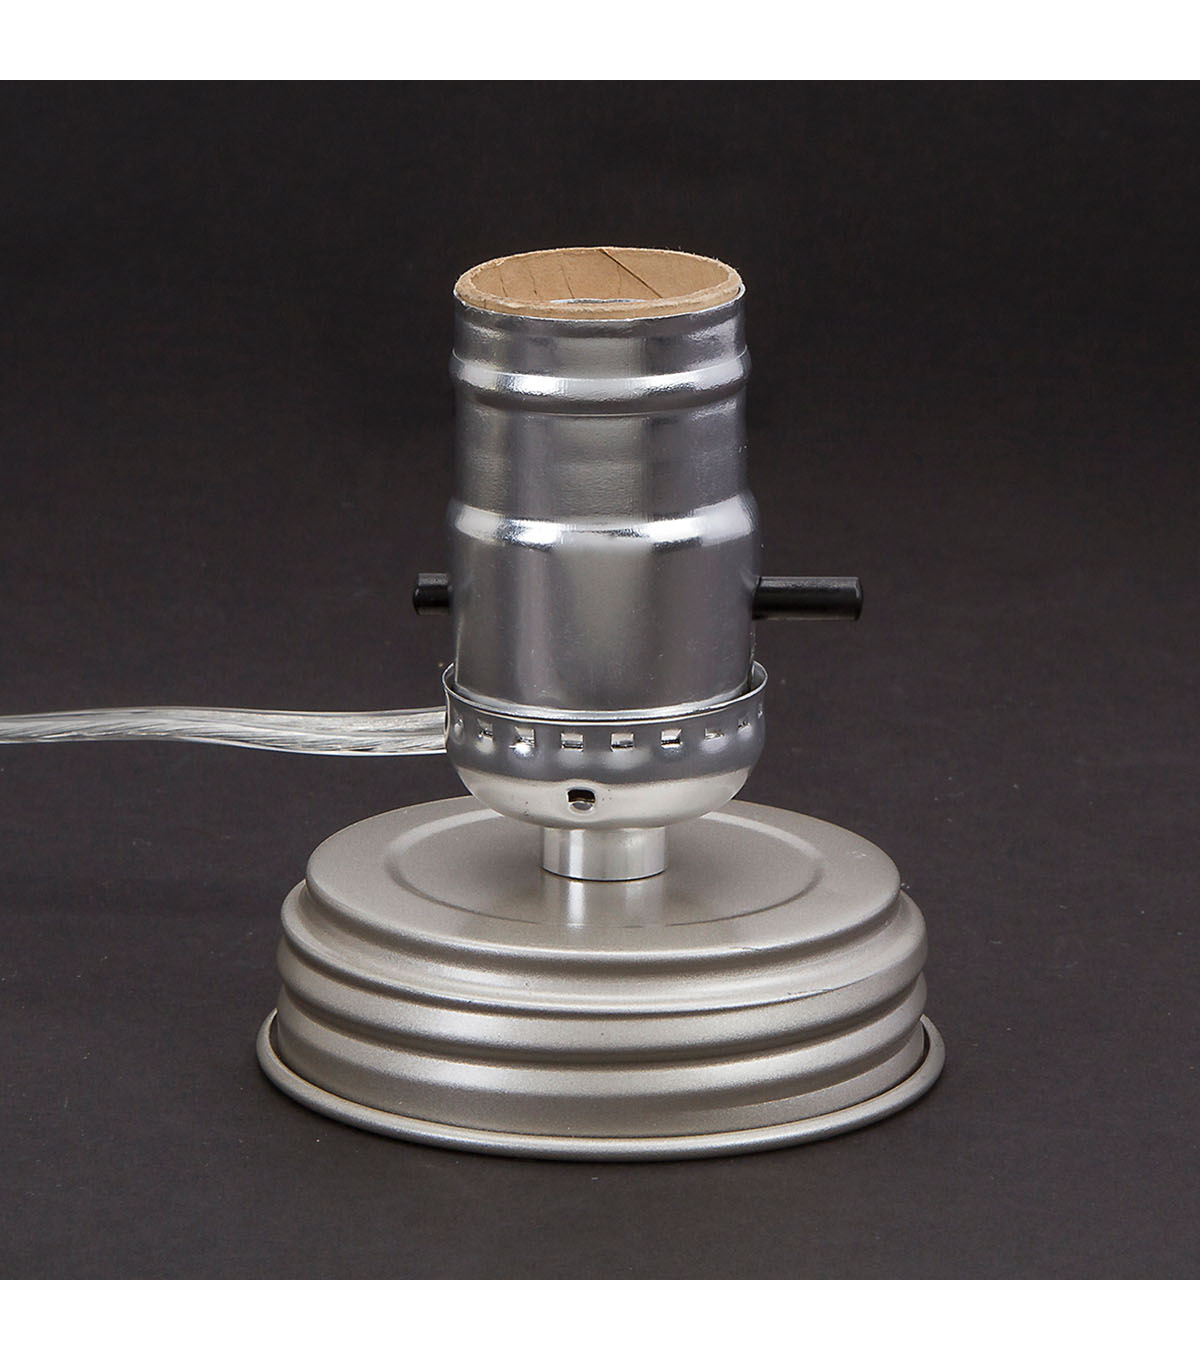 Darice Cleveland Vintage Lighting 7.5\u0027 Canning Jar Lamp Adapter